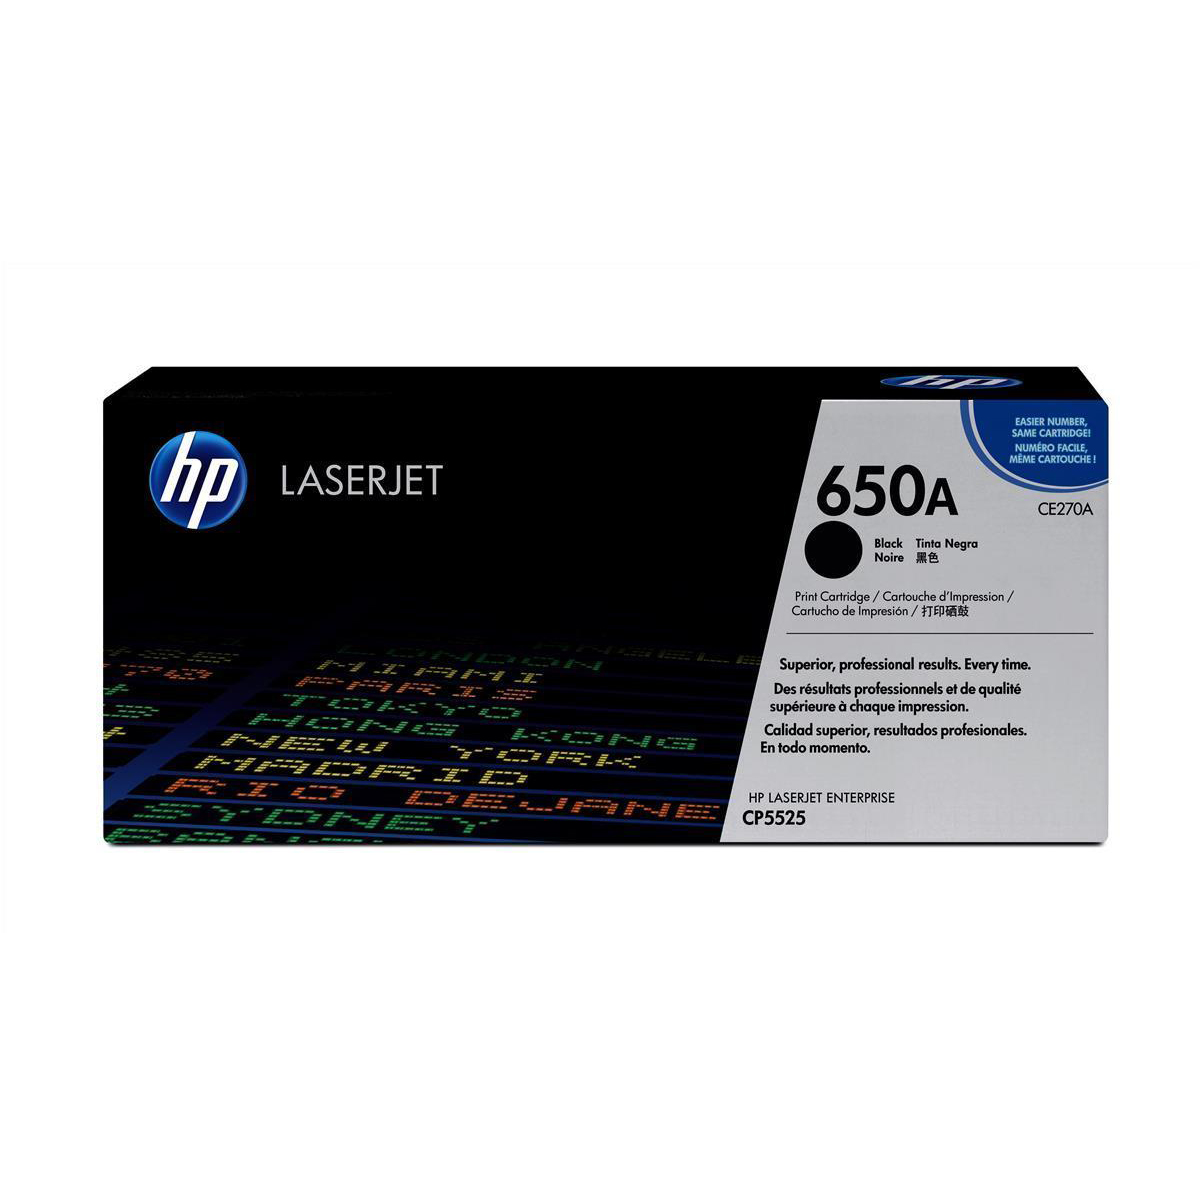 Hewlett Packard [HP] No. 650A Laser Toner Cartridge Page Life 13500pp Black Ref CE270A